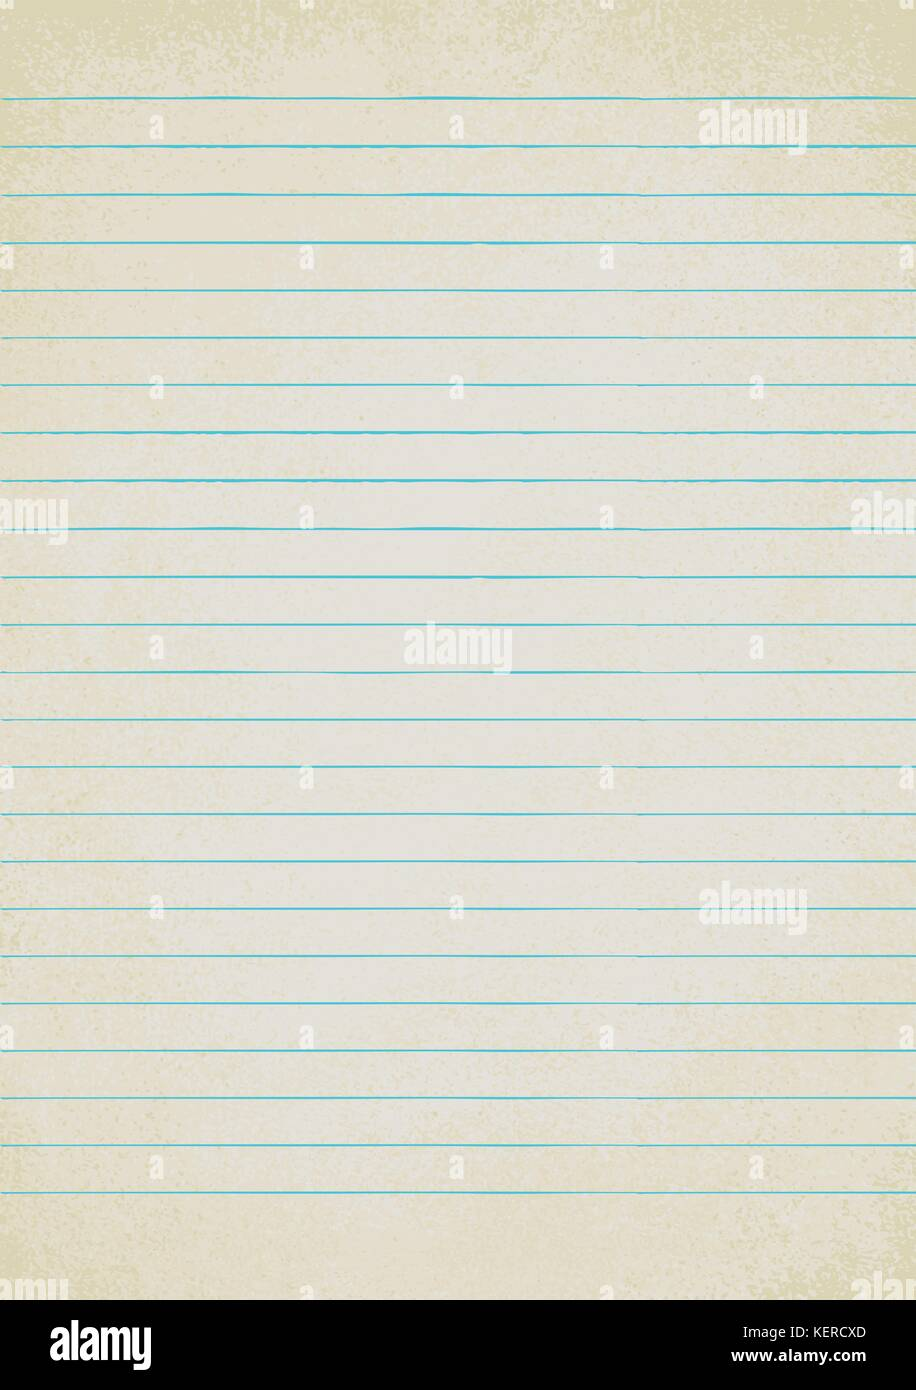 empty vintage lined paper sheet vector background stock vector art